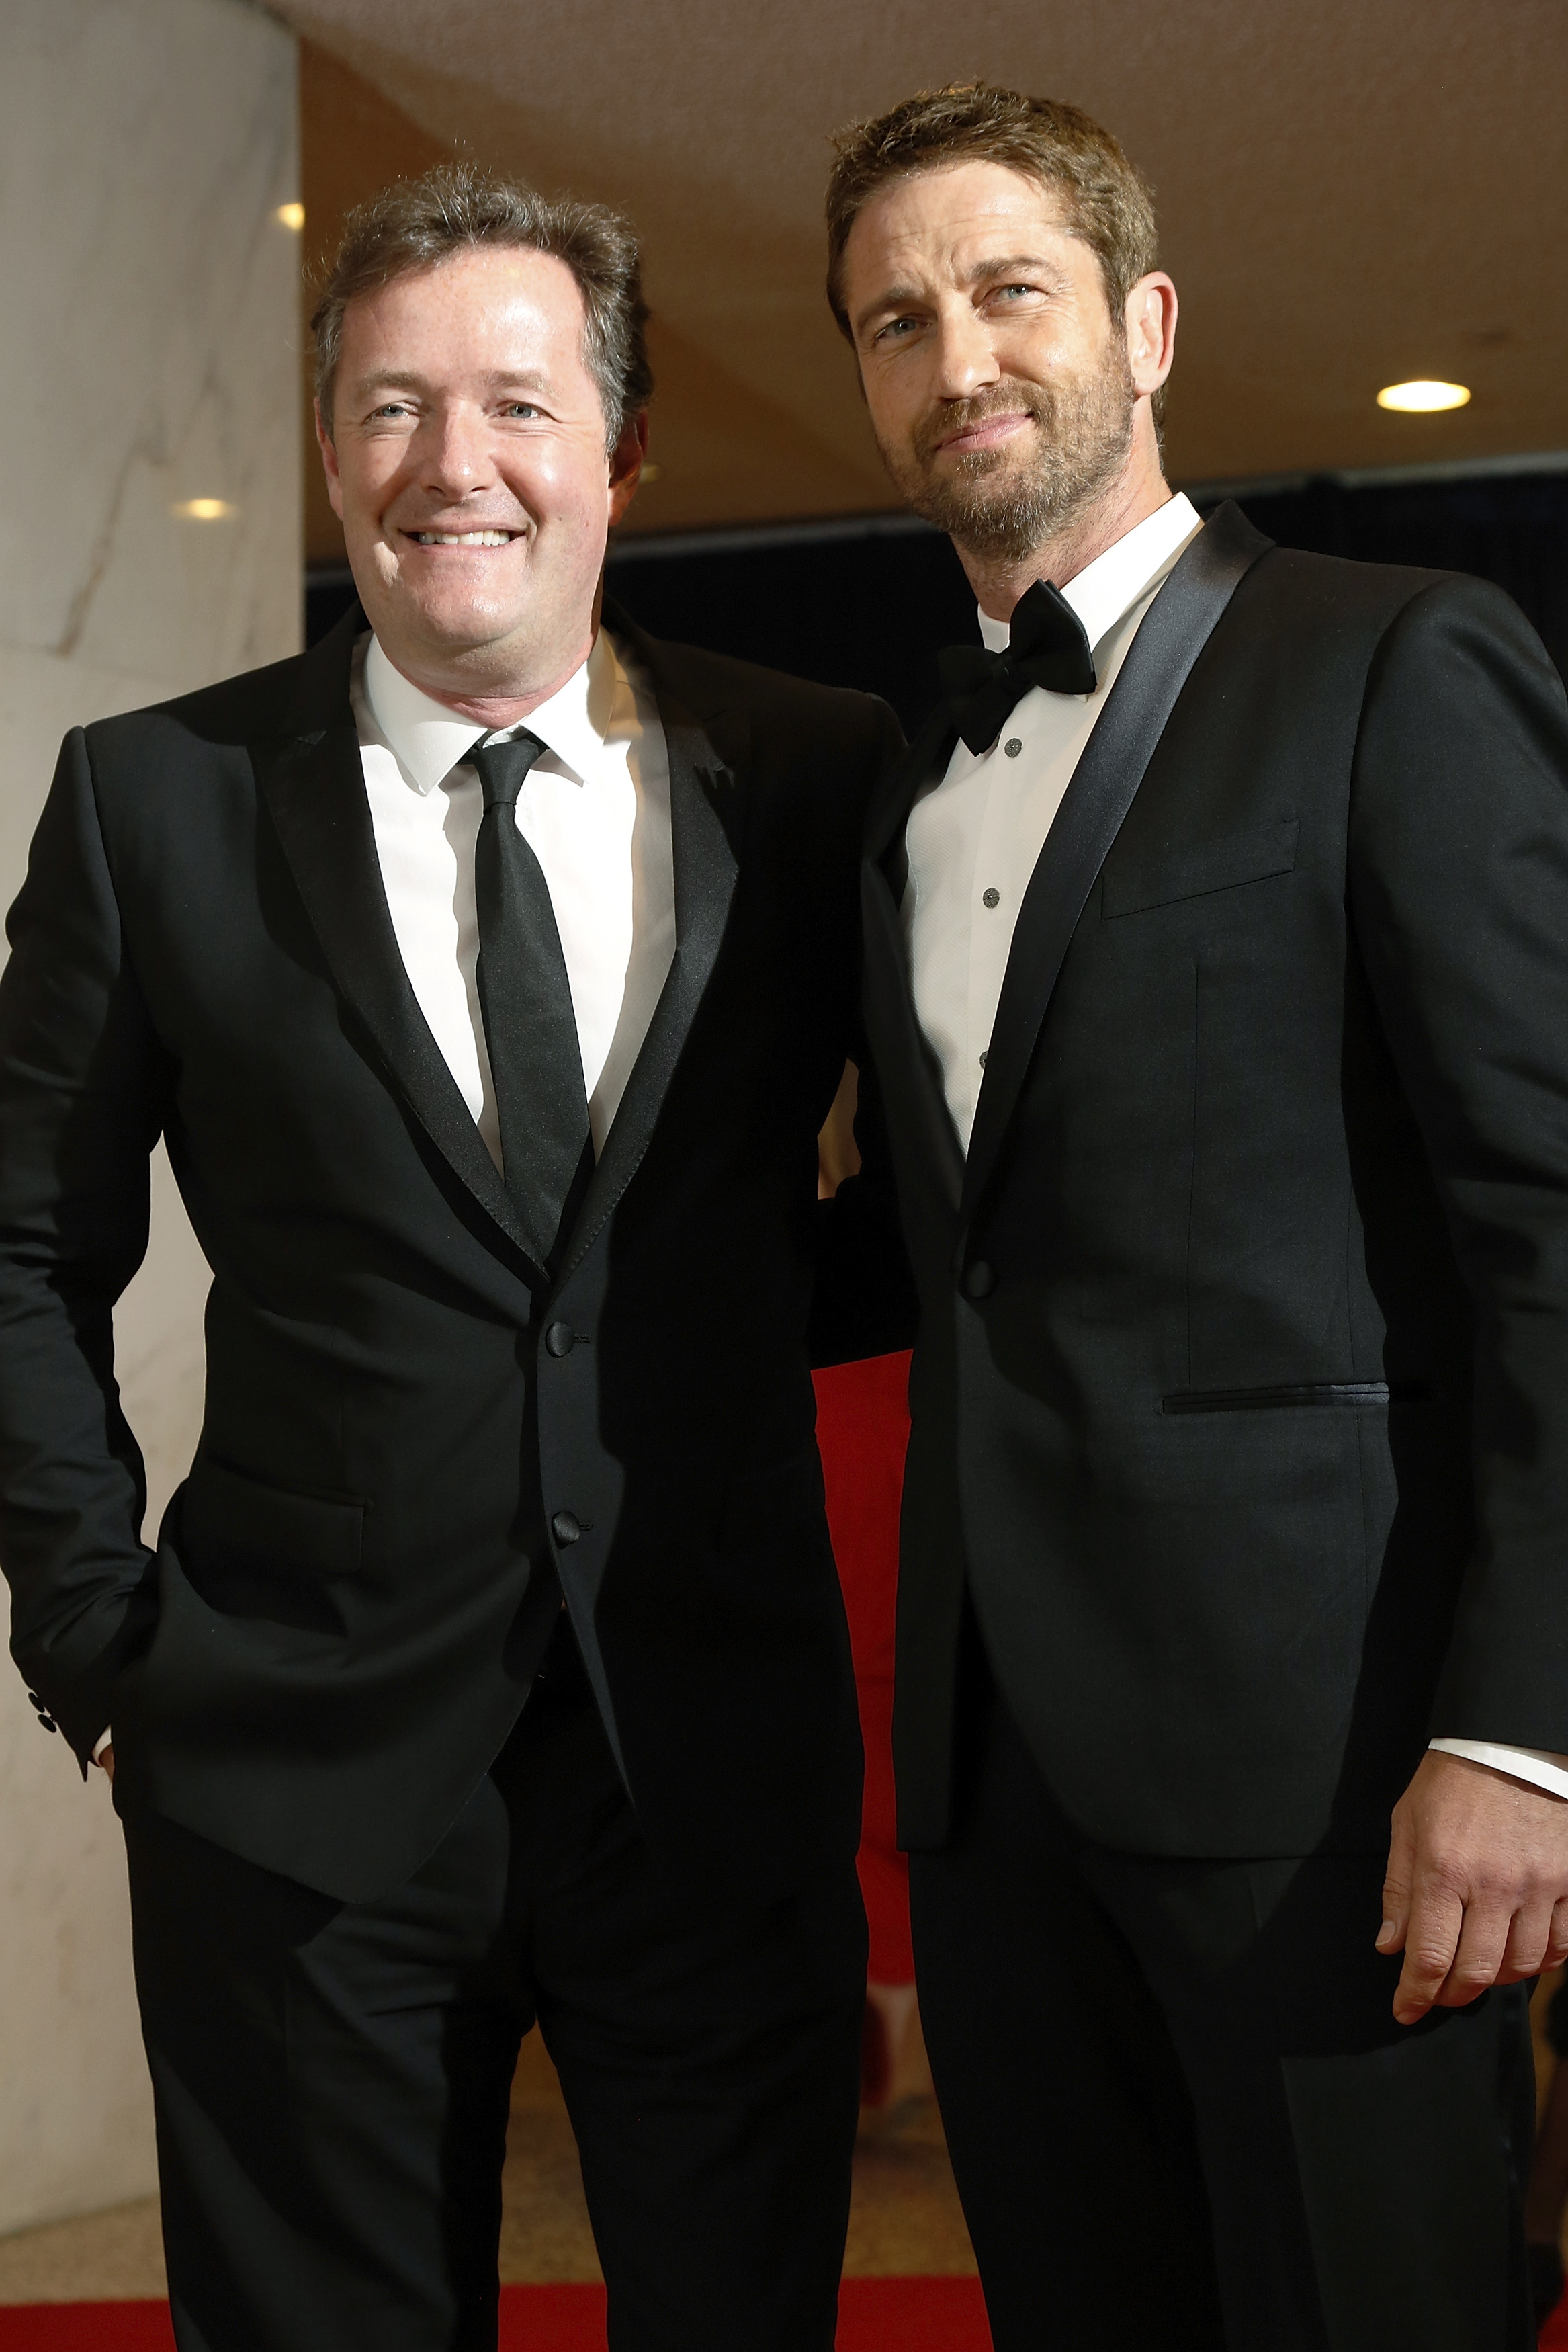 TV personality Piers Morgan and actor Gerard Butler (R) arrive on the red carpet at the annual White House Correspondents' Association dinner in Washington April 27, 2013. REUTERS/Jonathan Ernst    (UNITED STATES - Tags: POLITICS ENTERTAINMENT)